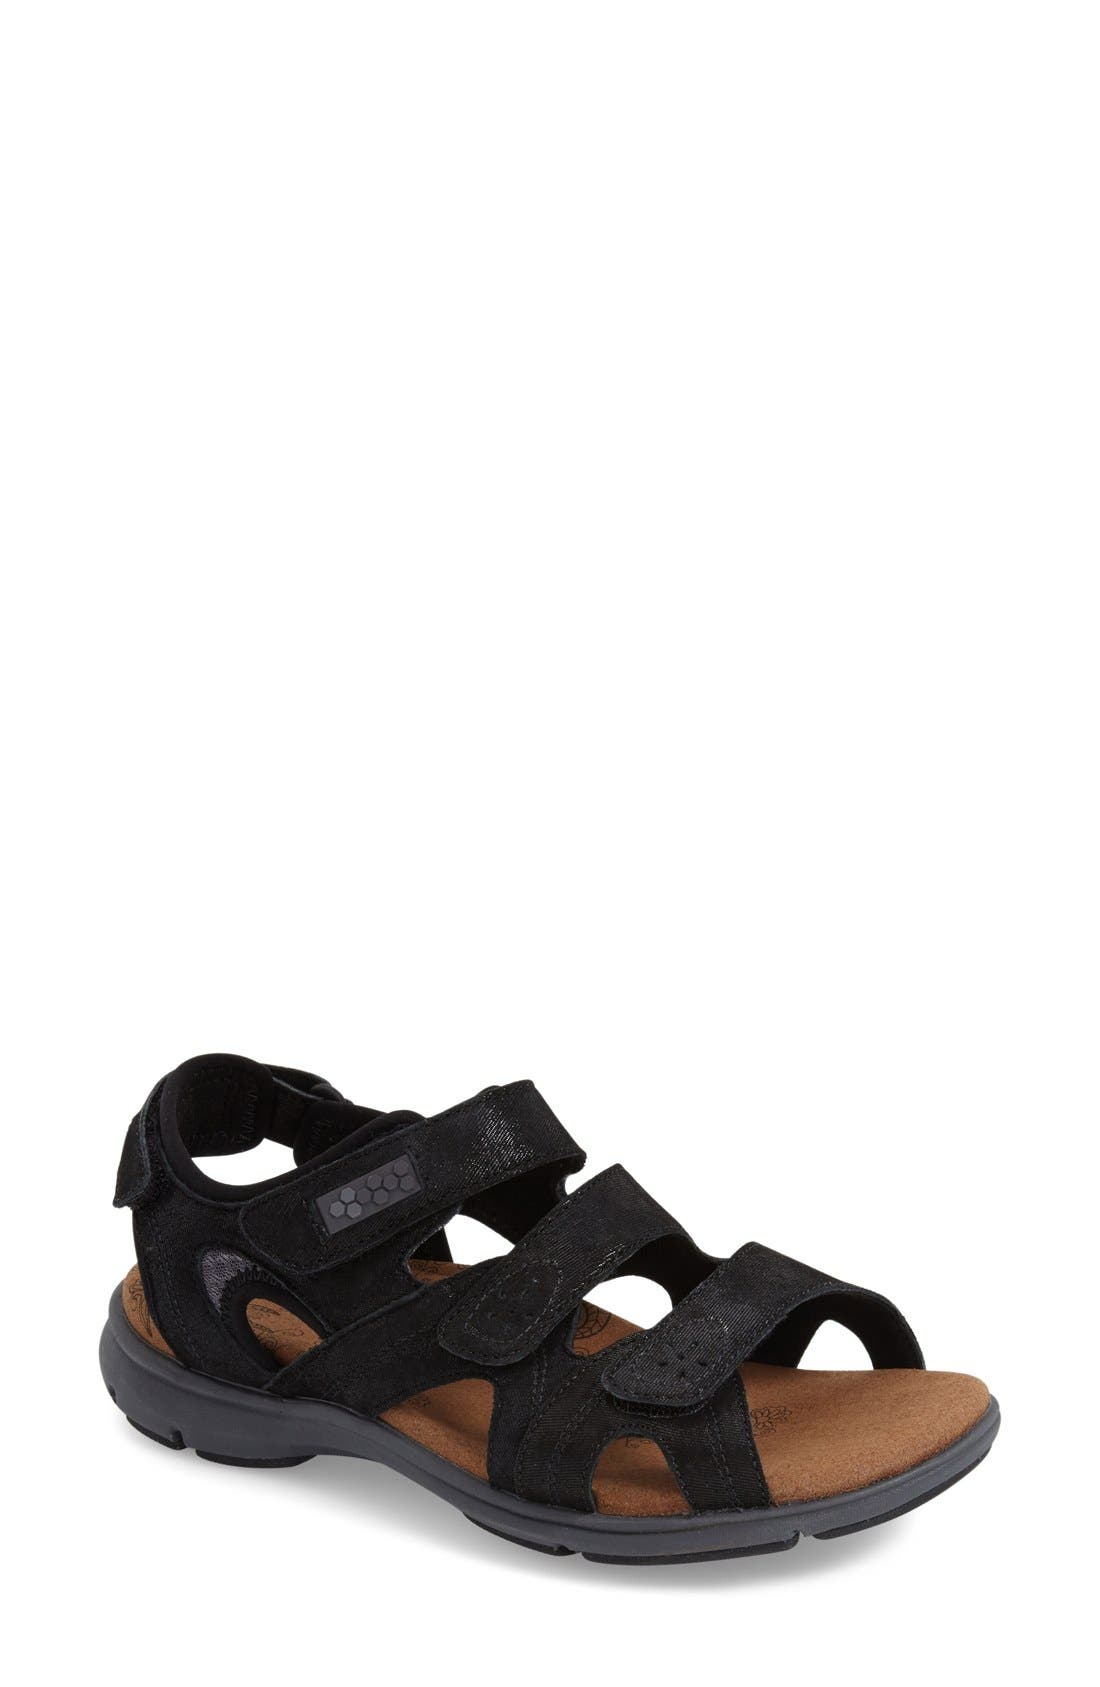 'REVsoleil' Sandal,                             Main thumbnail 1, color,                             BLACK LEATHER